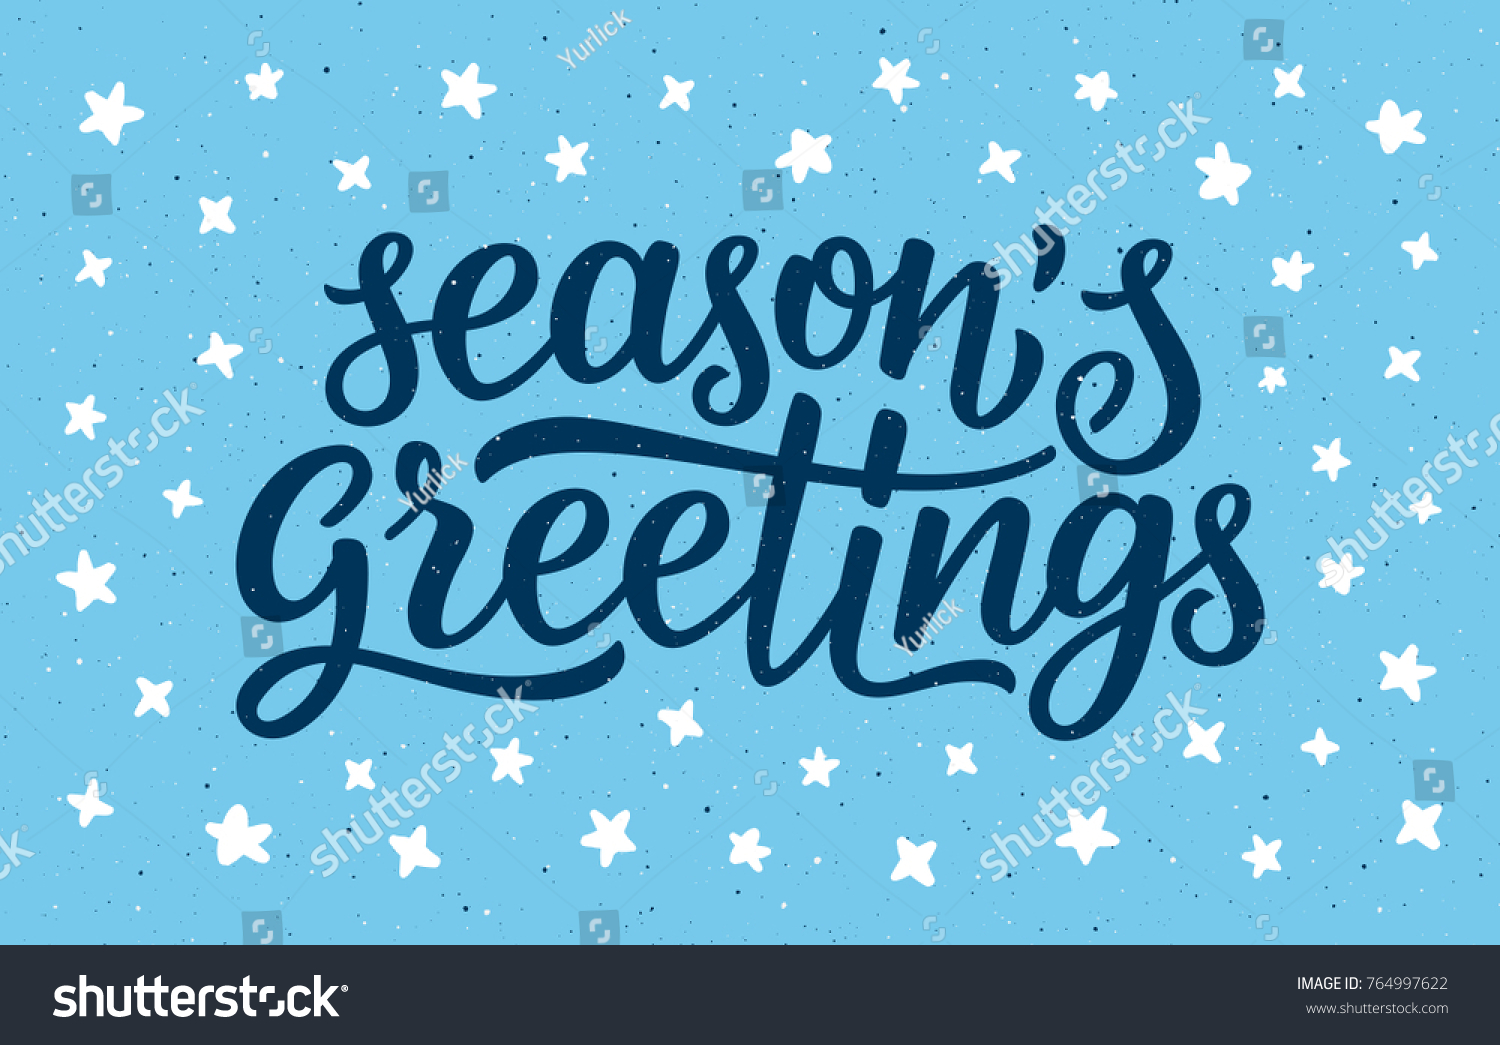 Seasons greetings calligraphy lettering text on stock vector seasons greetings calligraphy lettering text on blue background with white doodle stars retro greeting card kristyandbryce Images